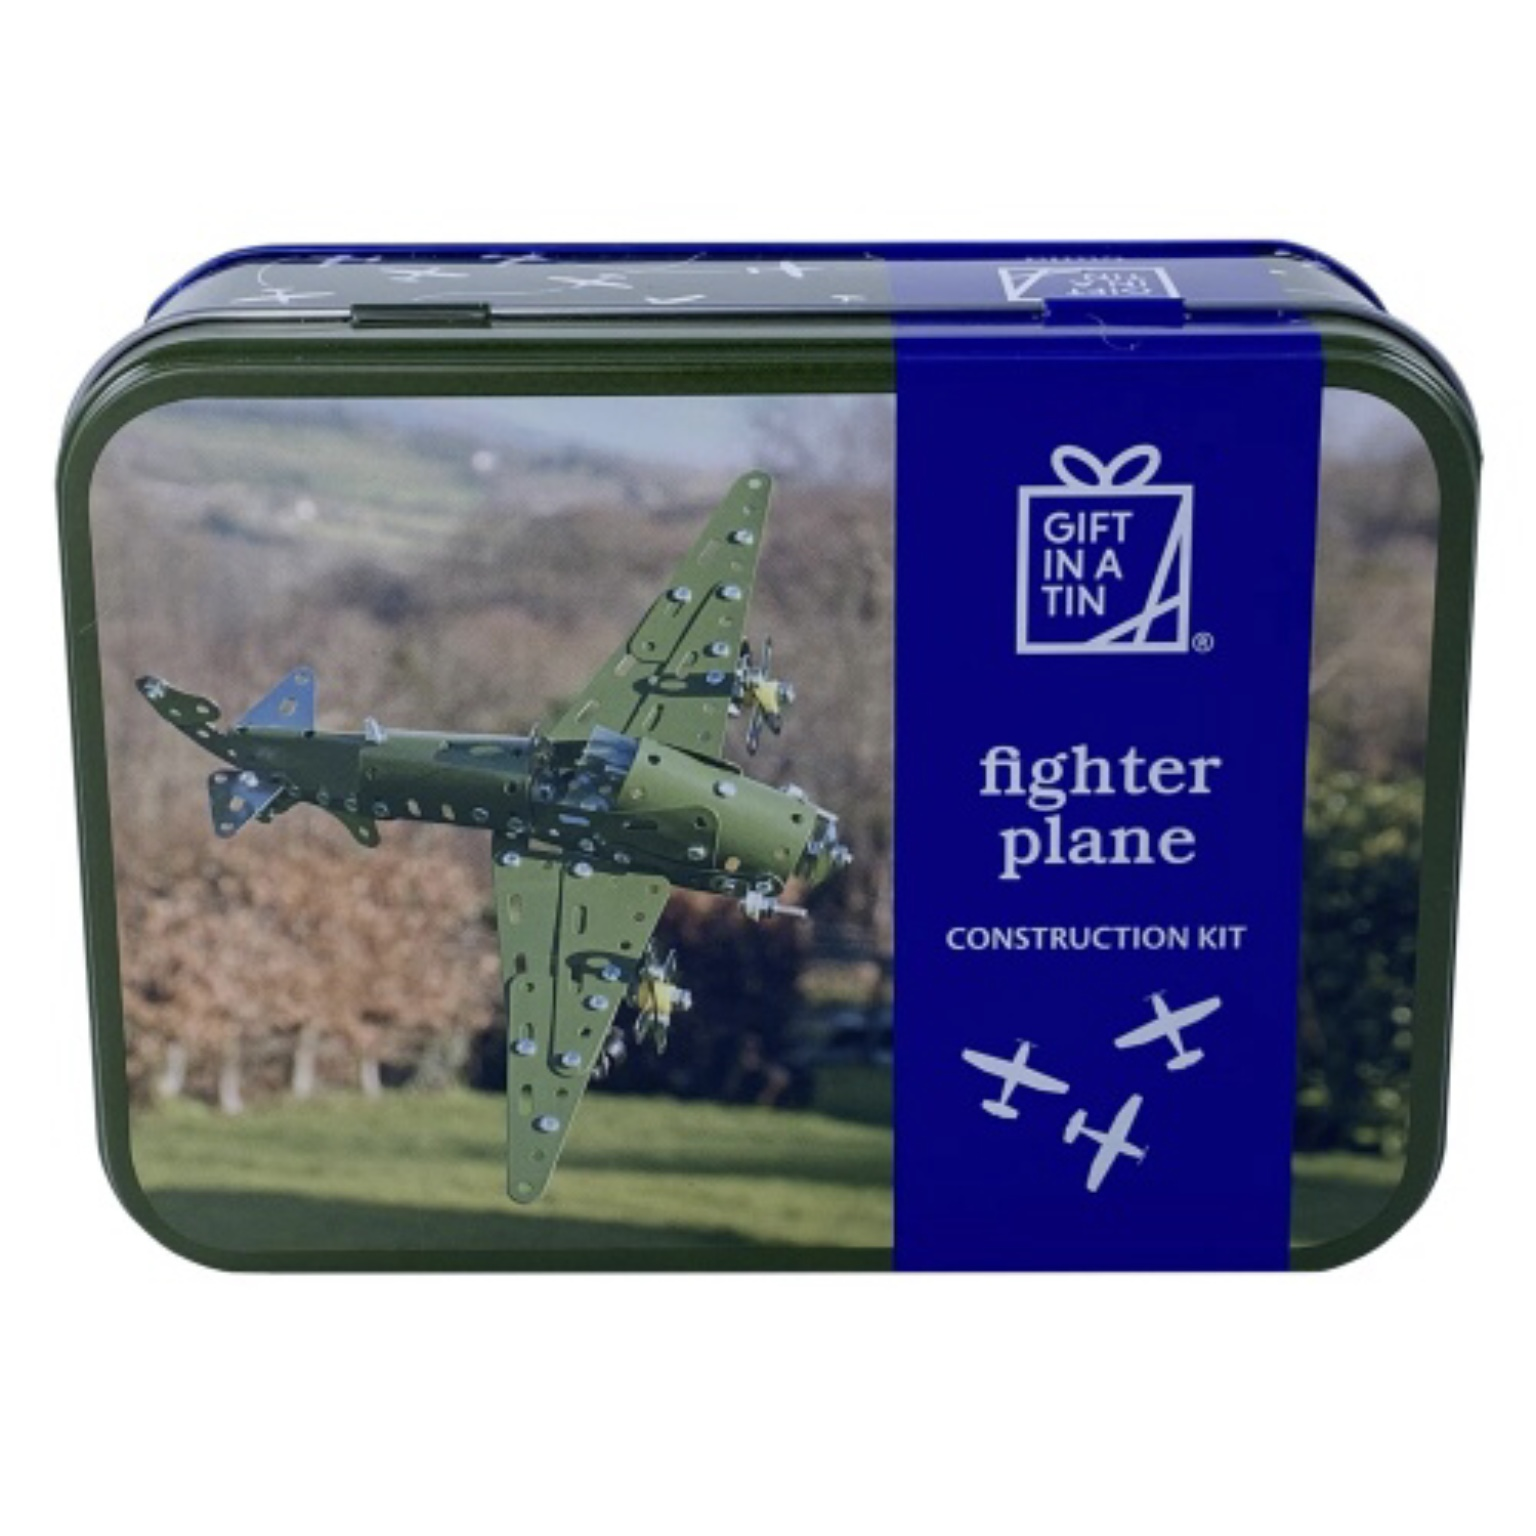 'Fighter Plane Construction Kit' Gift in a Tin